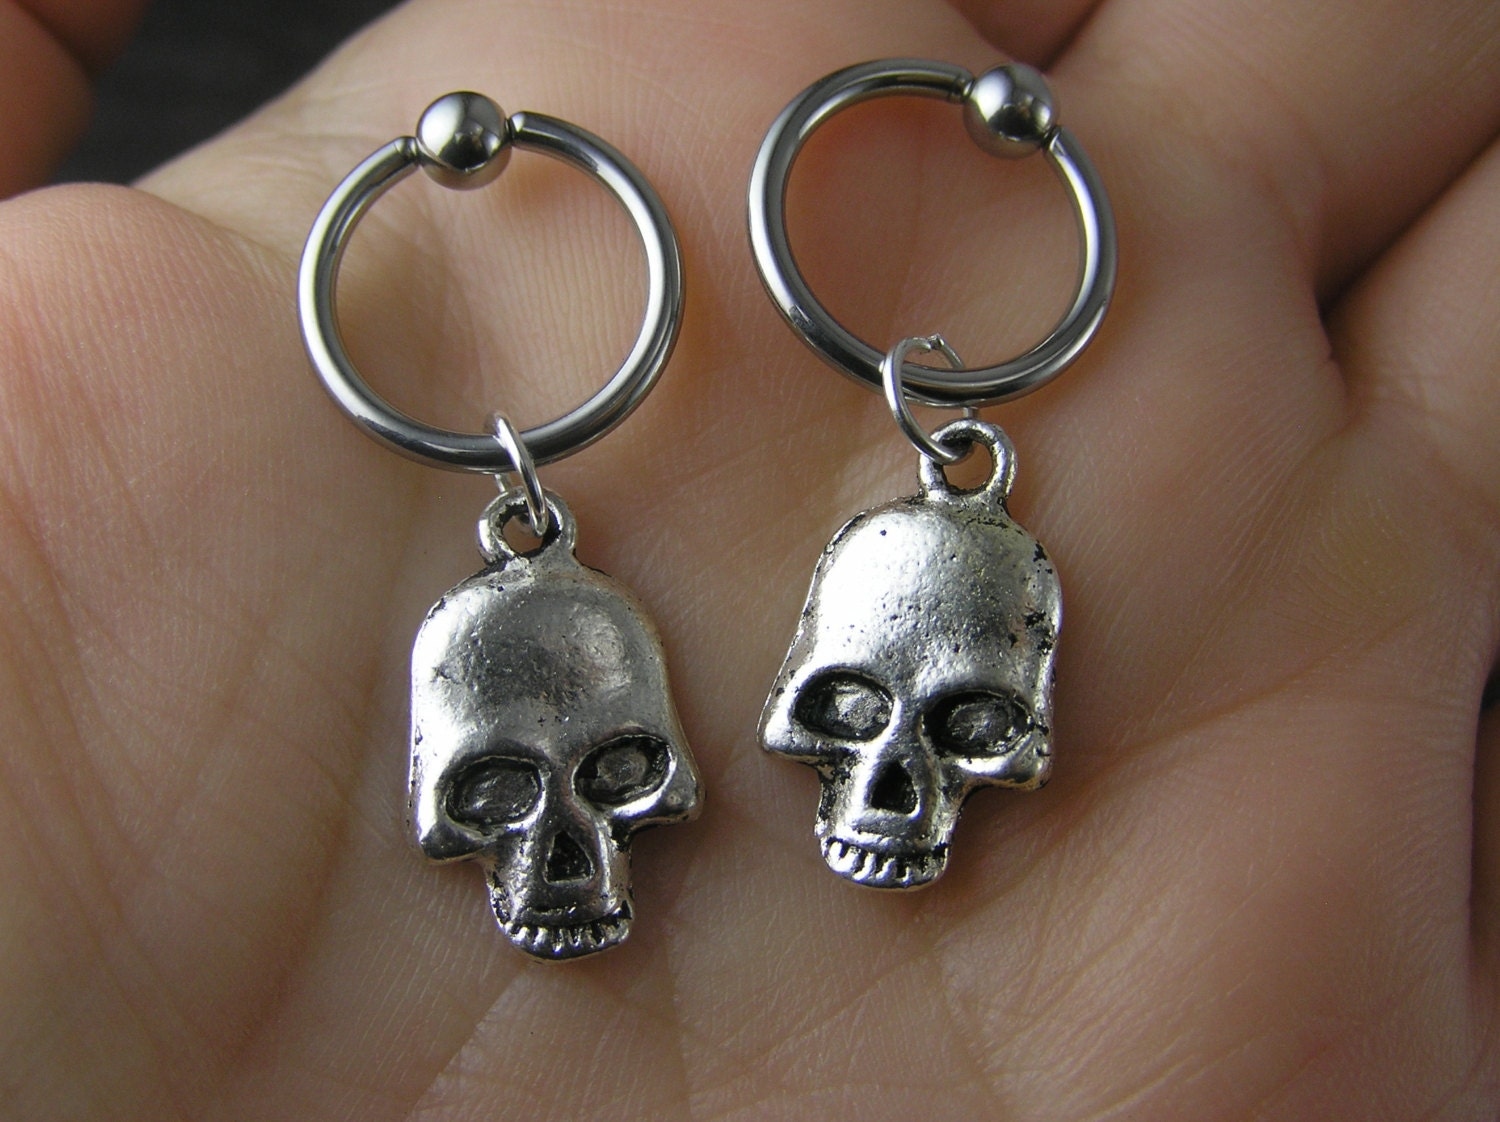 captive bead earrings one silver skull captive bead ring earring 12g 14g 16g 18g 2787